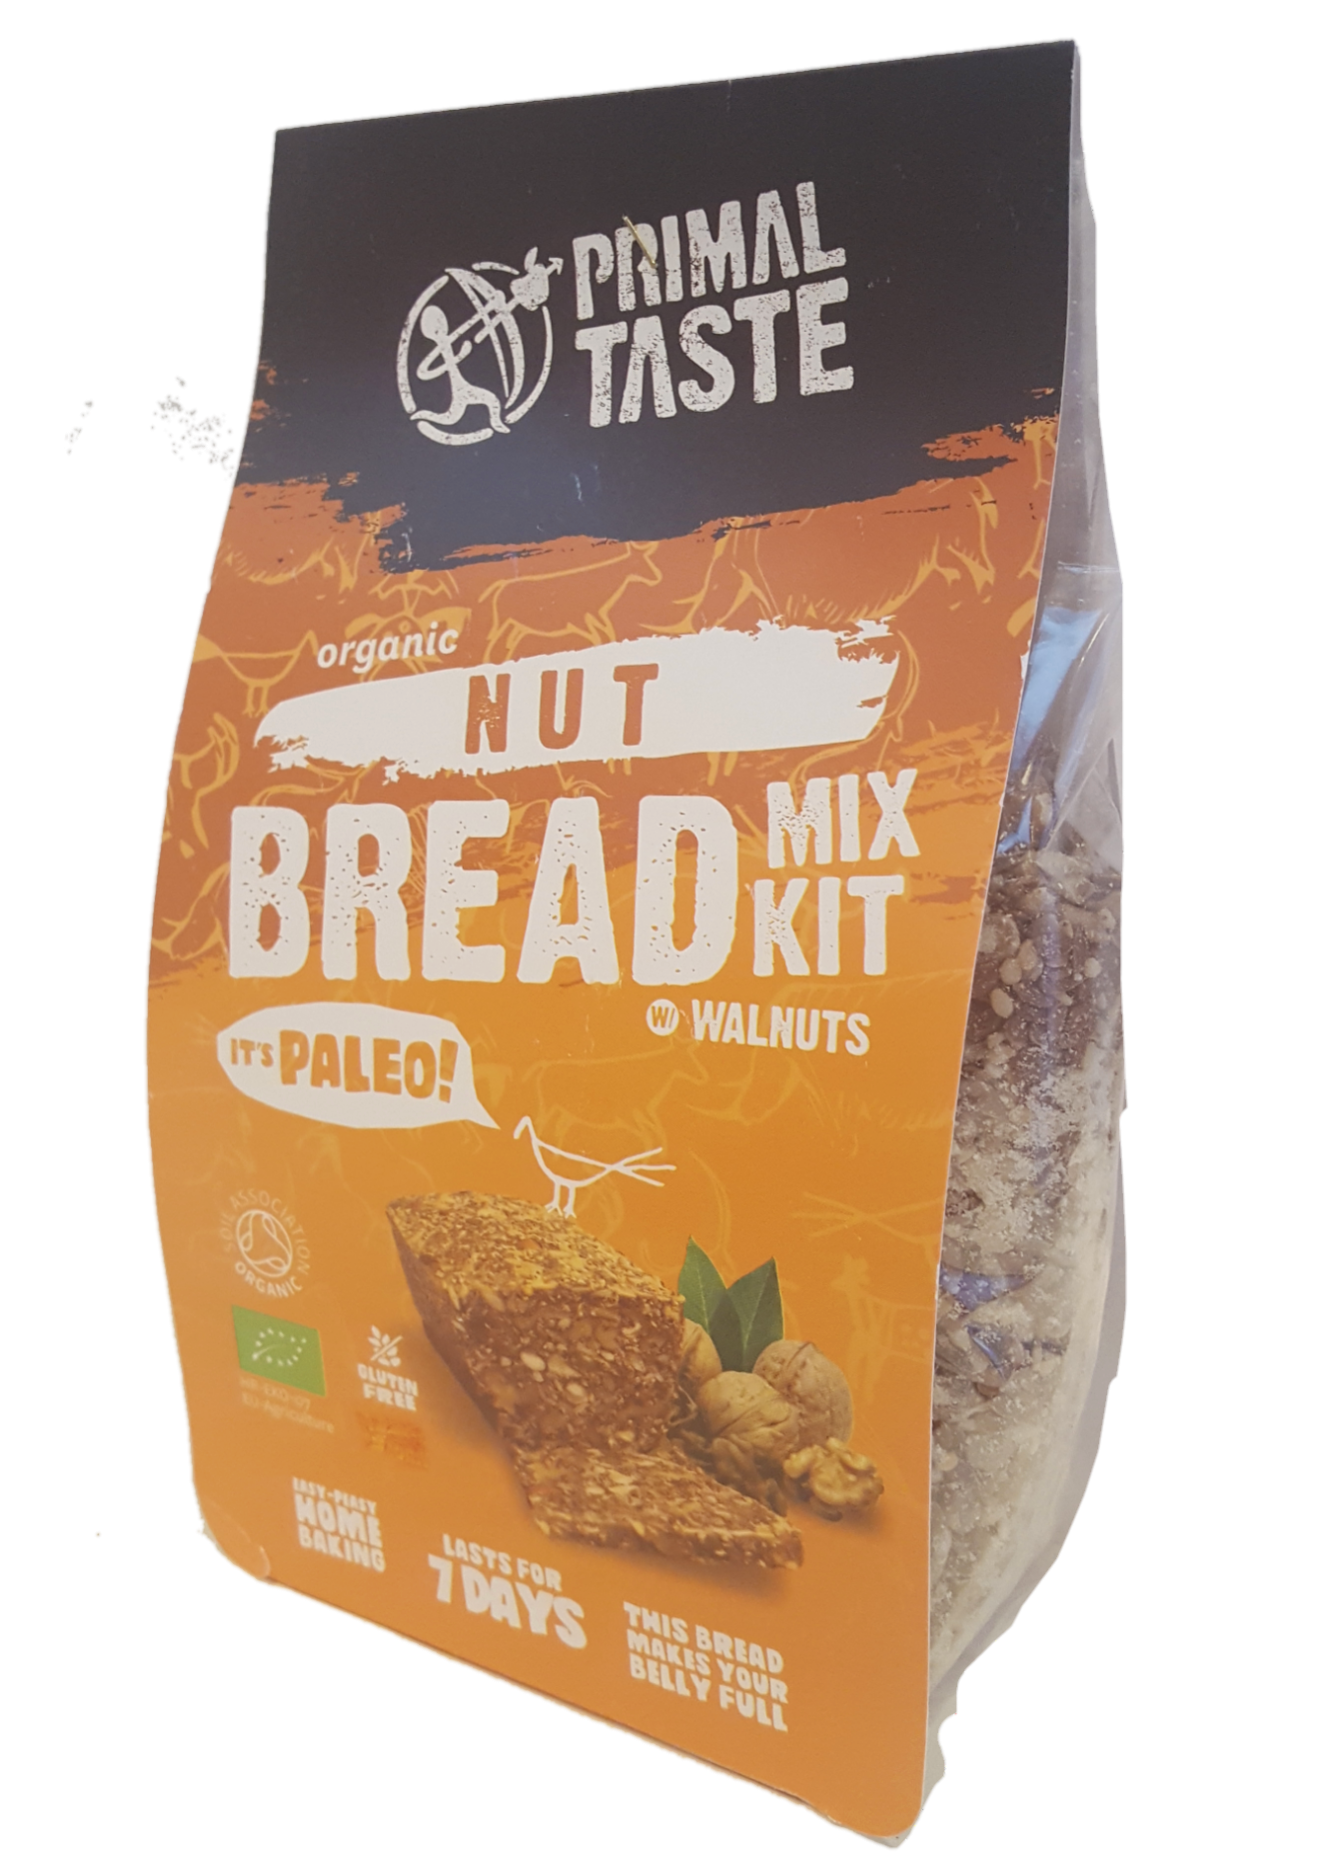 Organic NUT BREAD MIX KIT 450 g